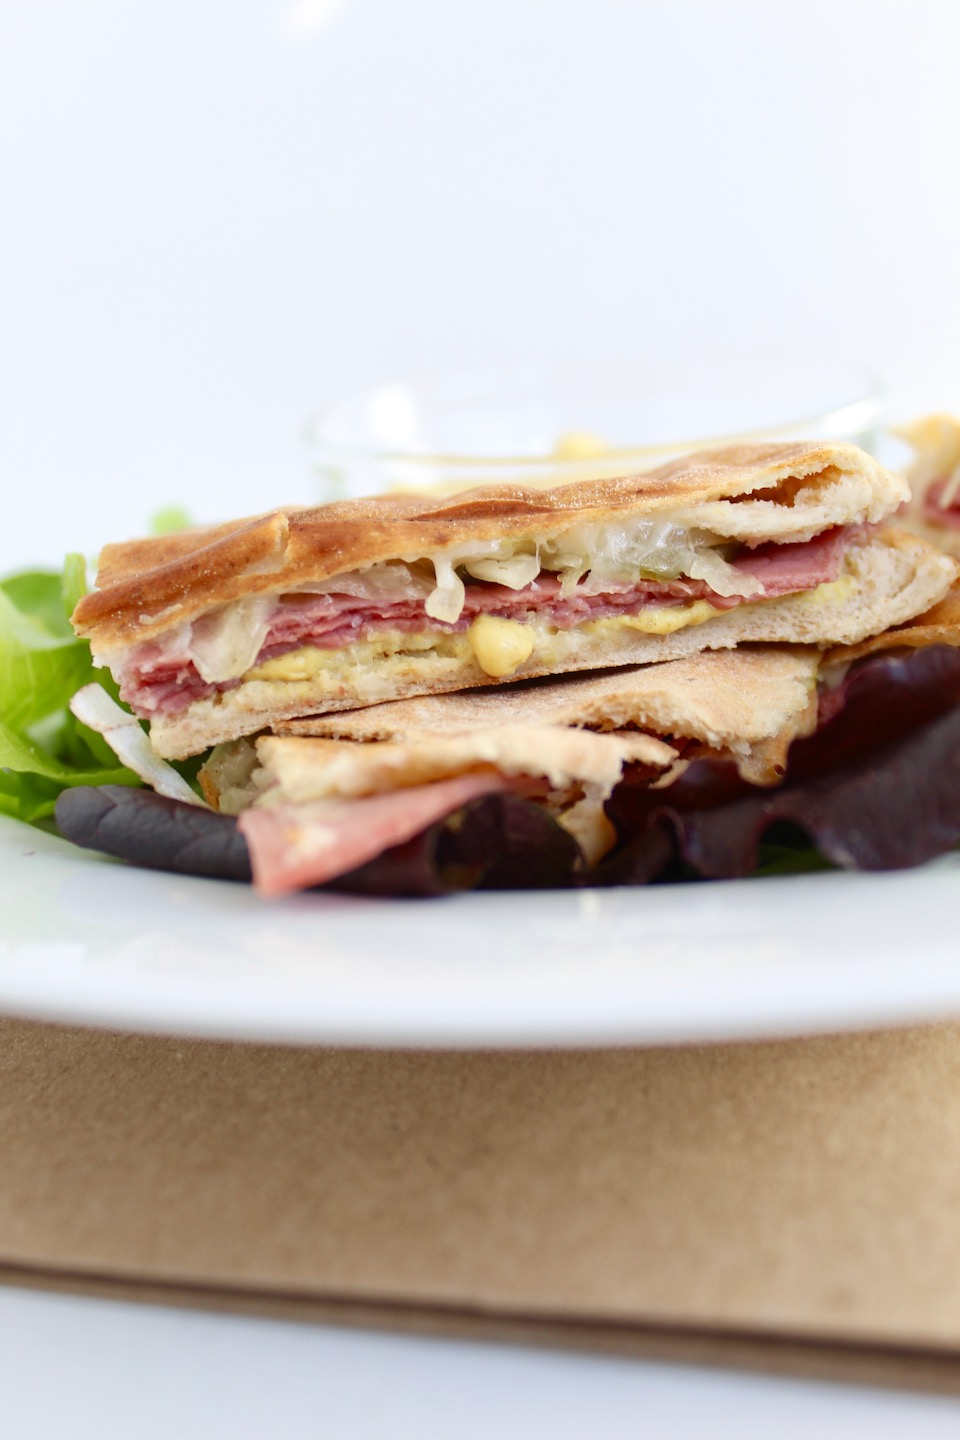 Corned Beef Sandwich Quesadilla on Plate